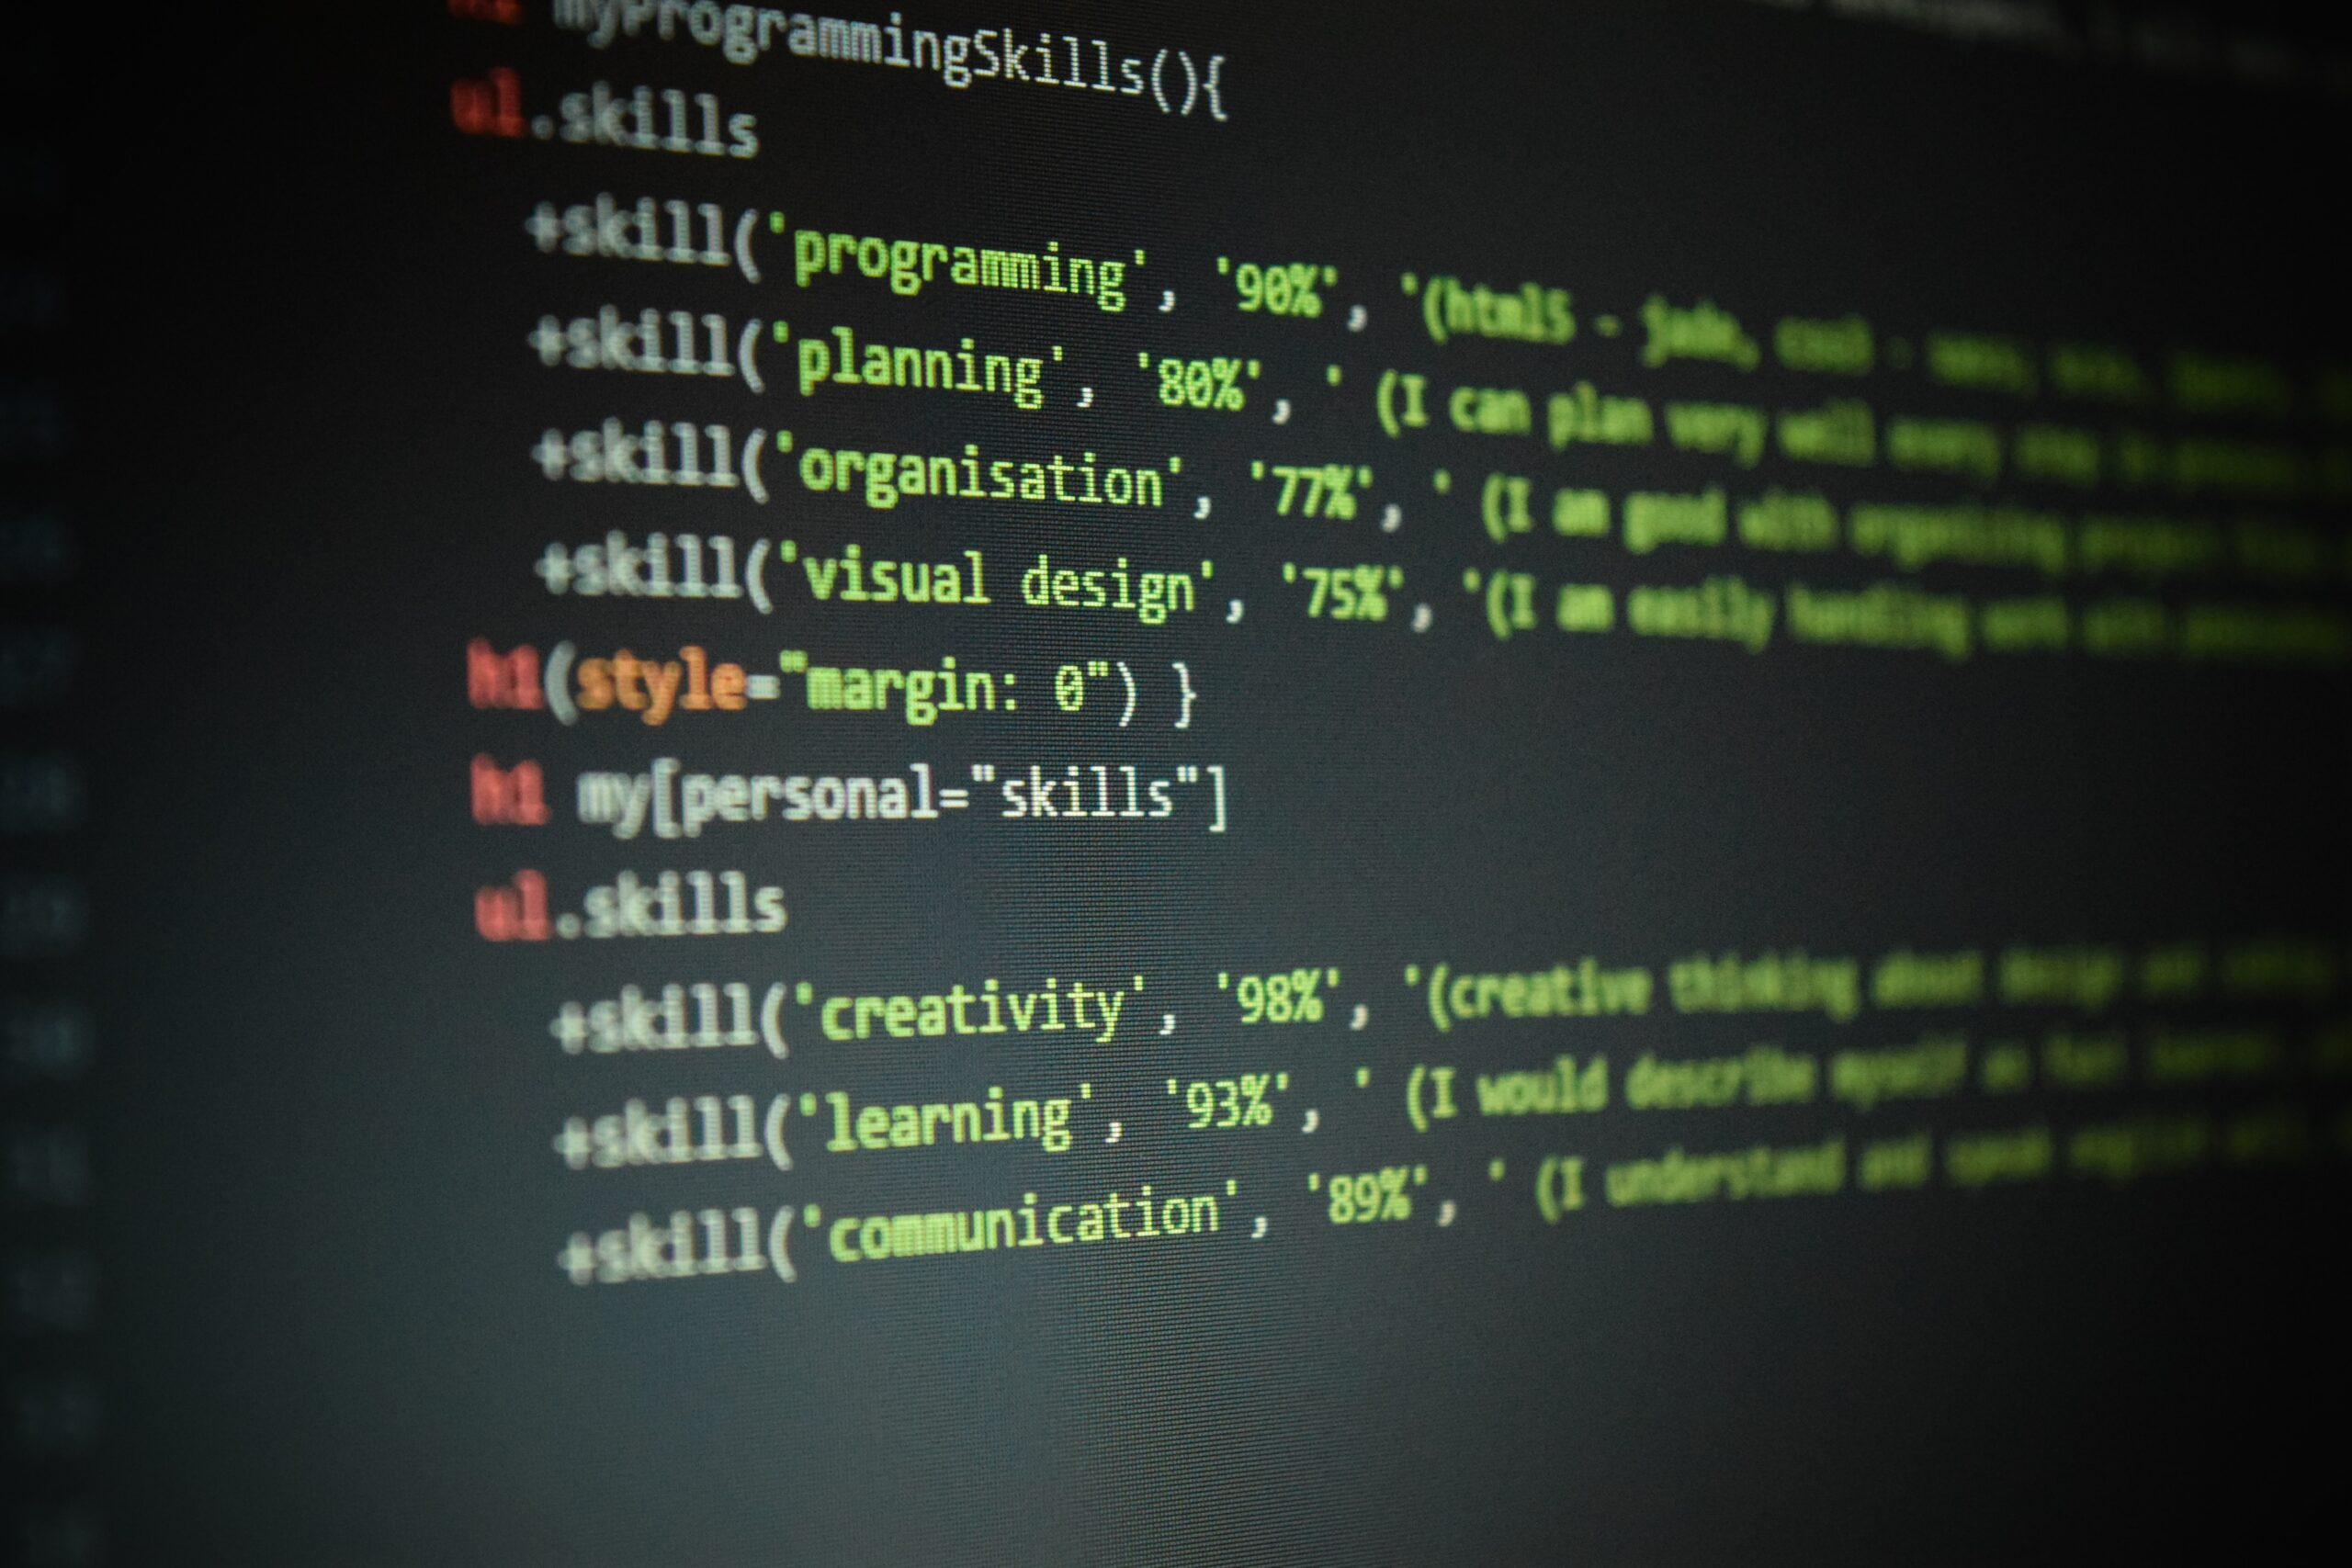 Coding with skills embedded